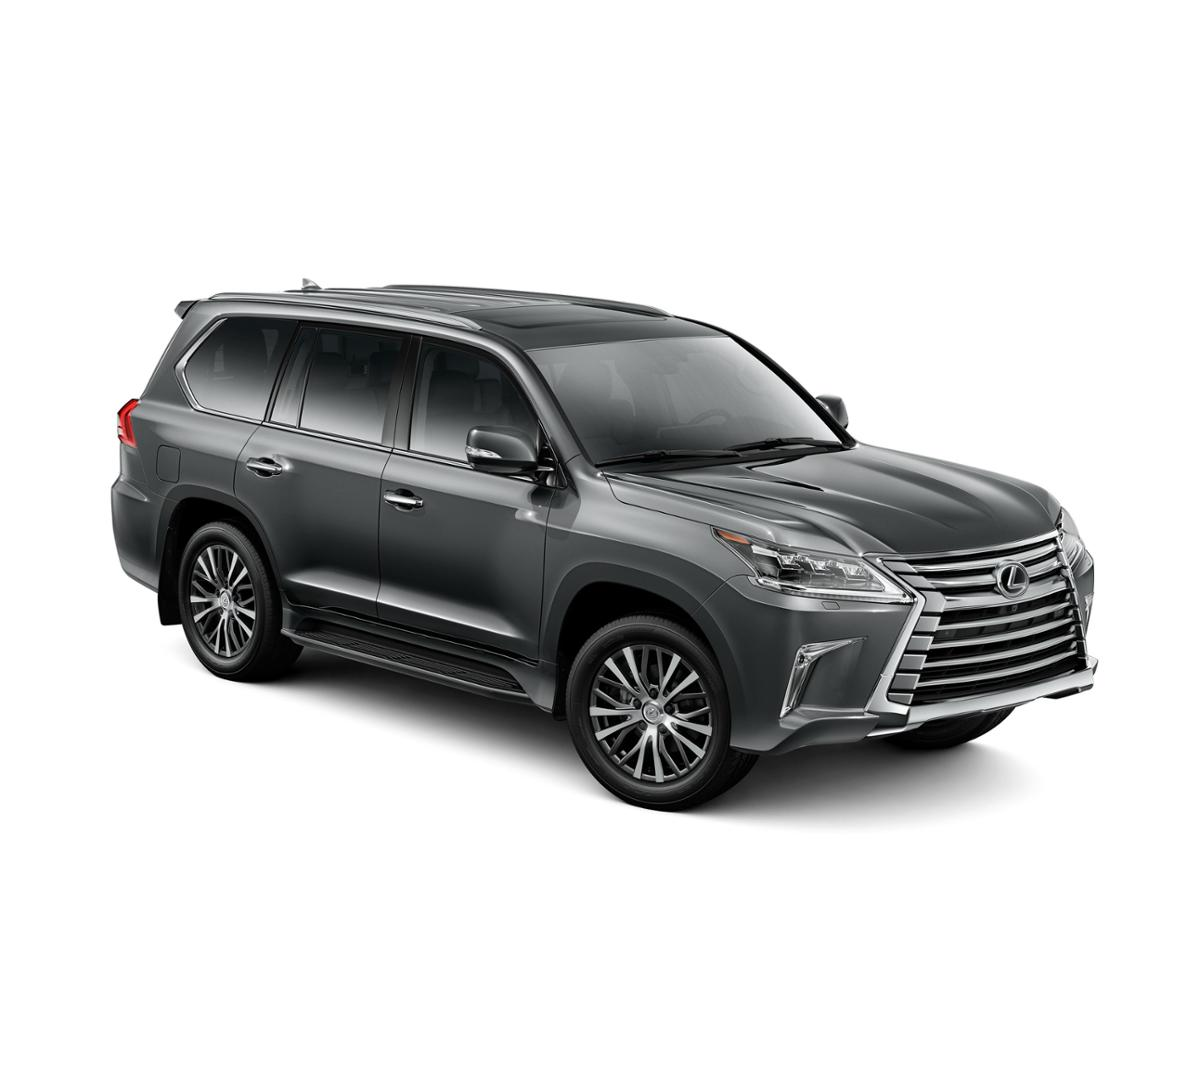 birmingham nebula gray pearl 2018 lexus lx 570 new suv for sale j4259578. Black Bedroom Furniture Sets. Home Design Ideas